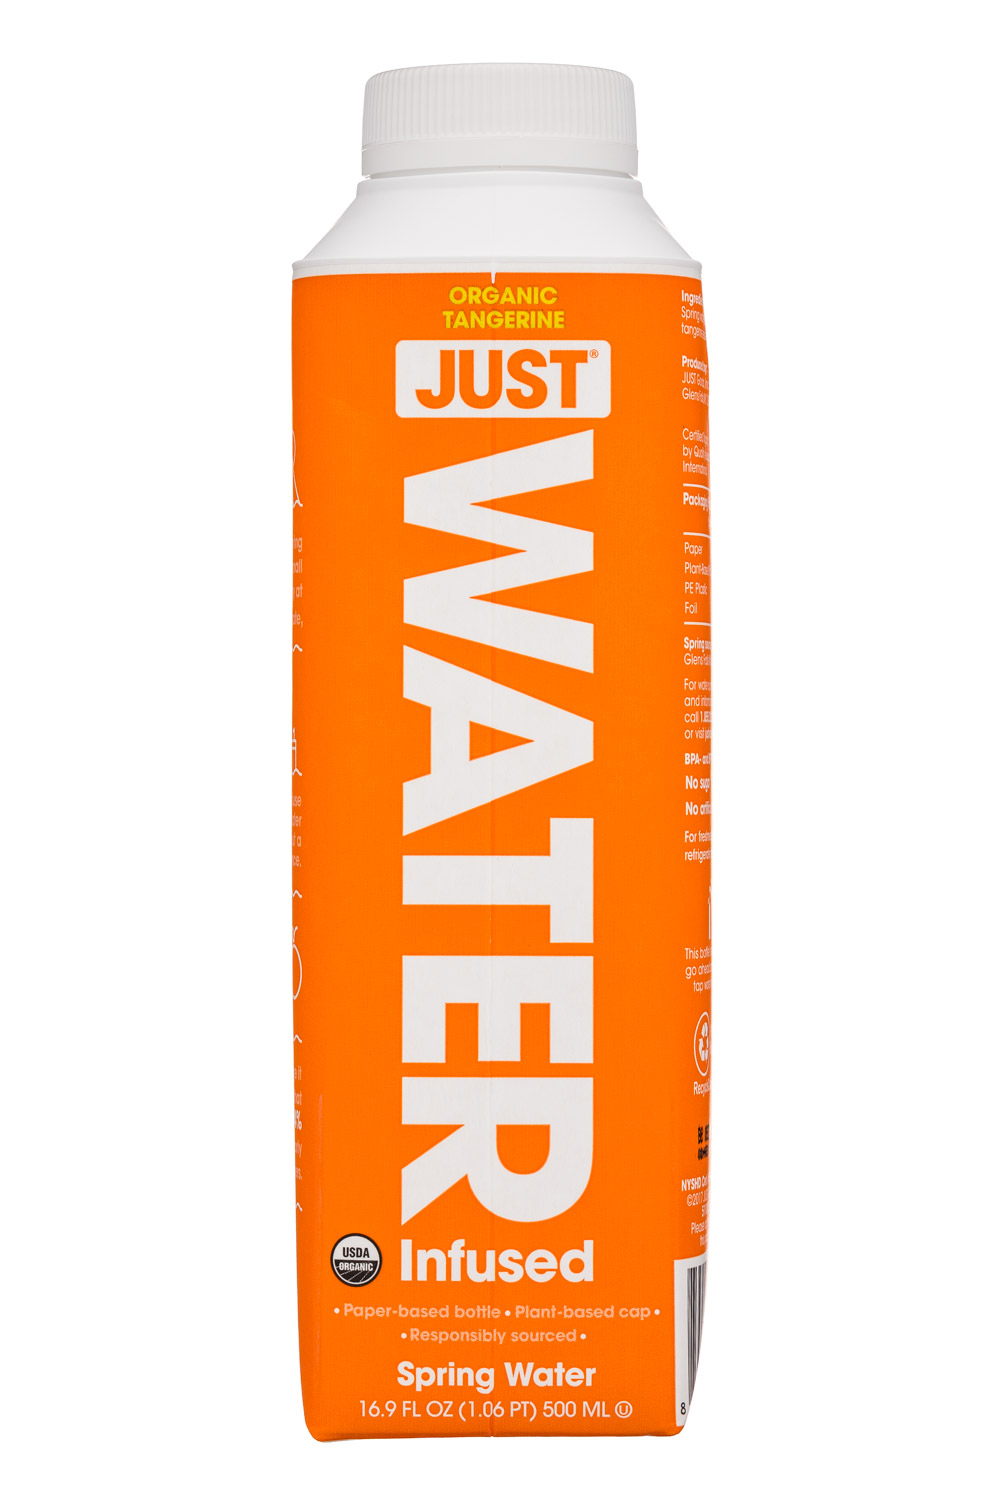 Tangerine Infused